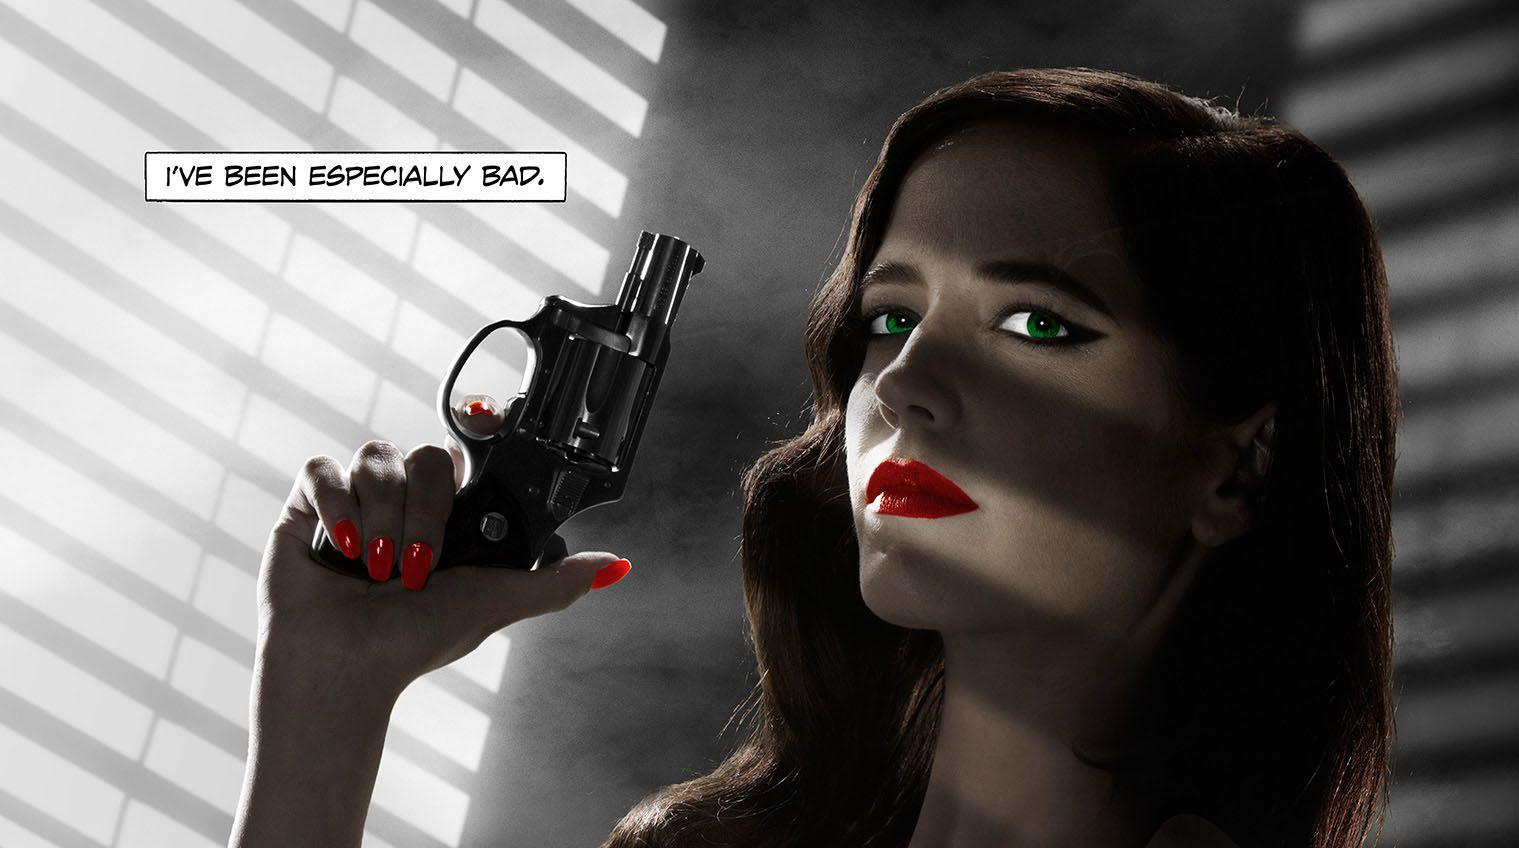 Sin City 2 Eva Green Poster